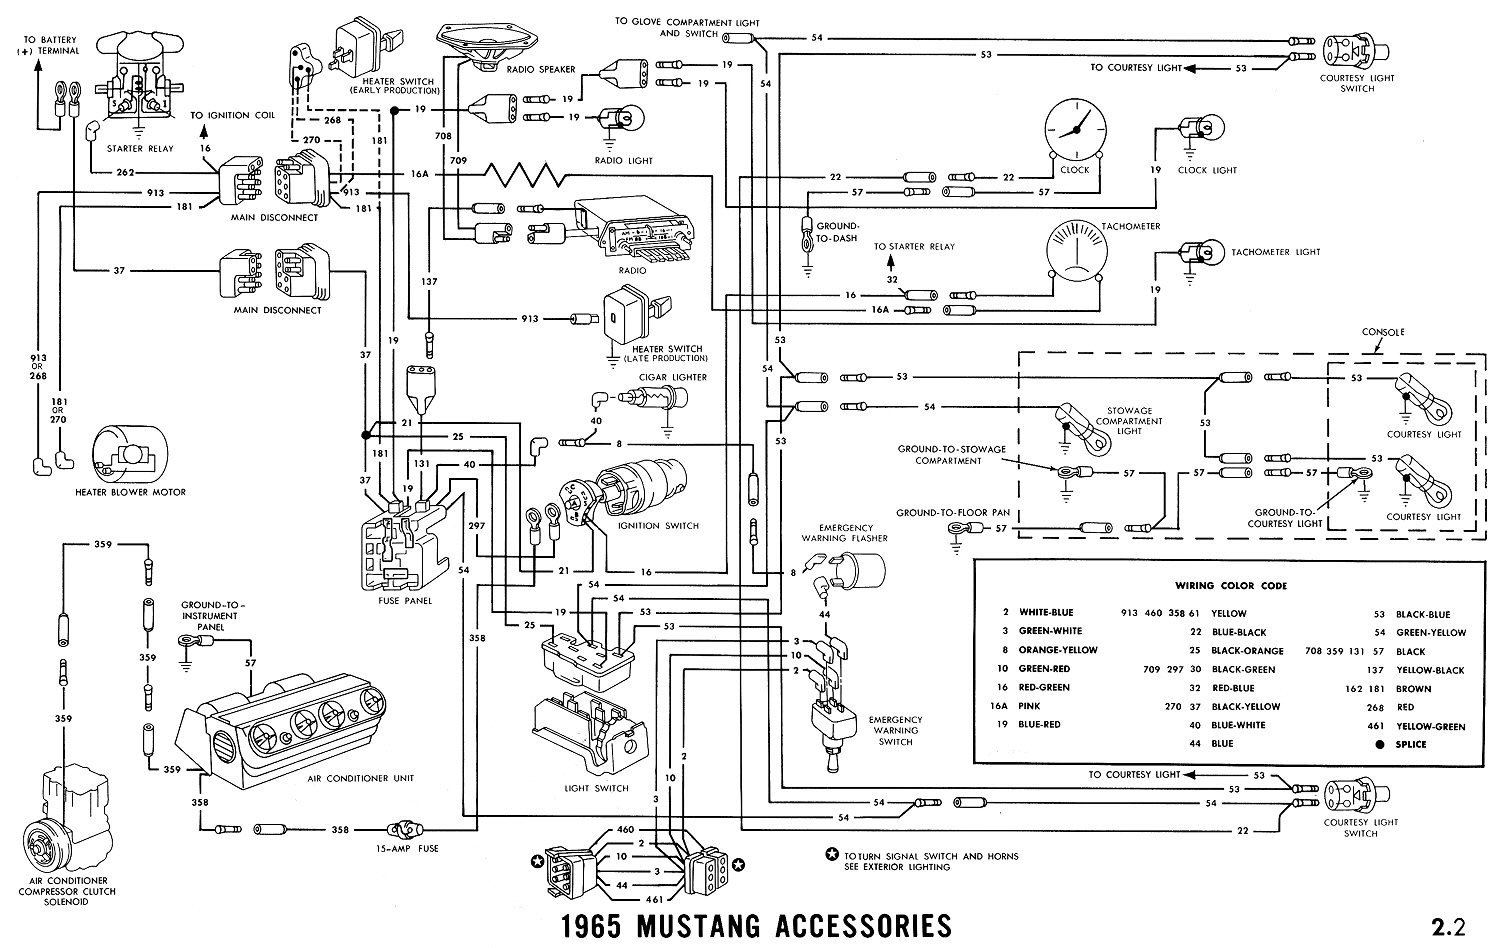 1965i 2006 mustang wiring diagram 2006 mustang wiring diagram running wiring harness 1964 mustang at bayanpartner.co